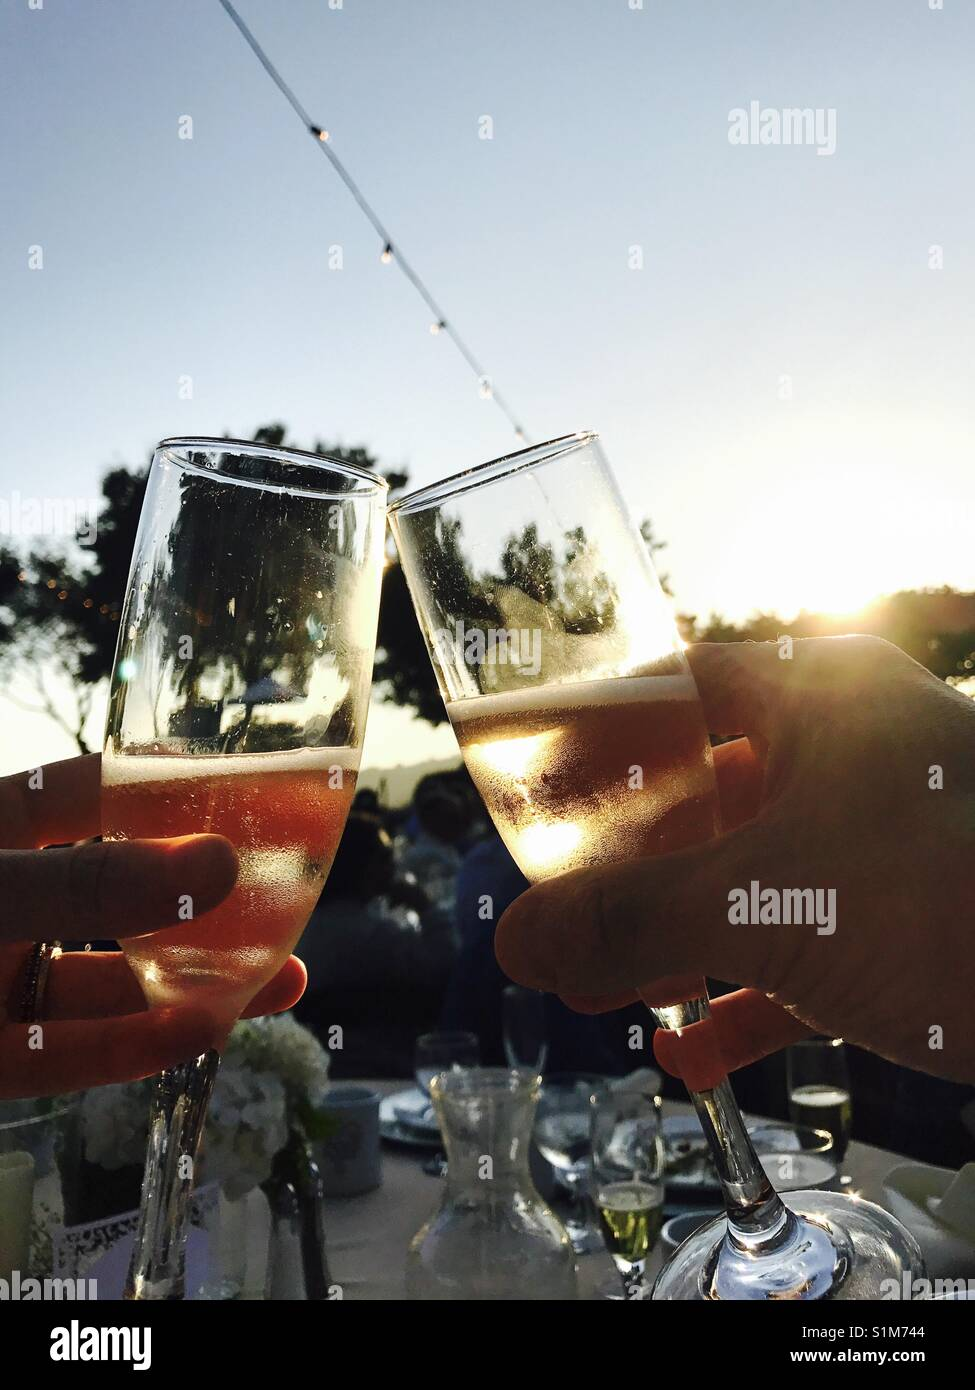 Two glasses of champagne toasting at a wedding at sunset. - Stock Image